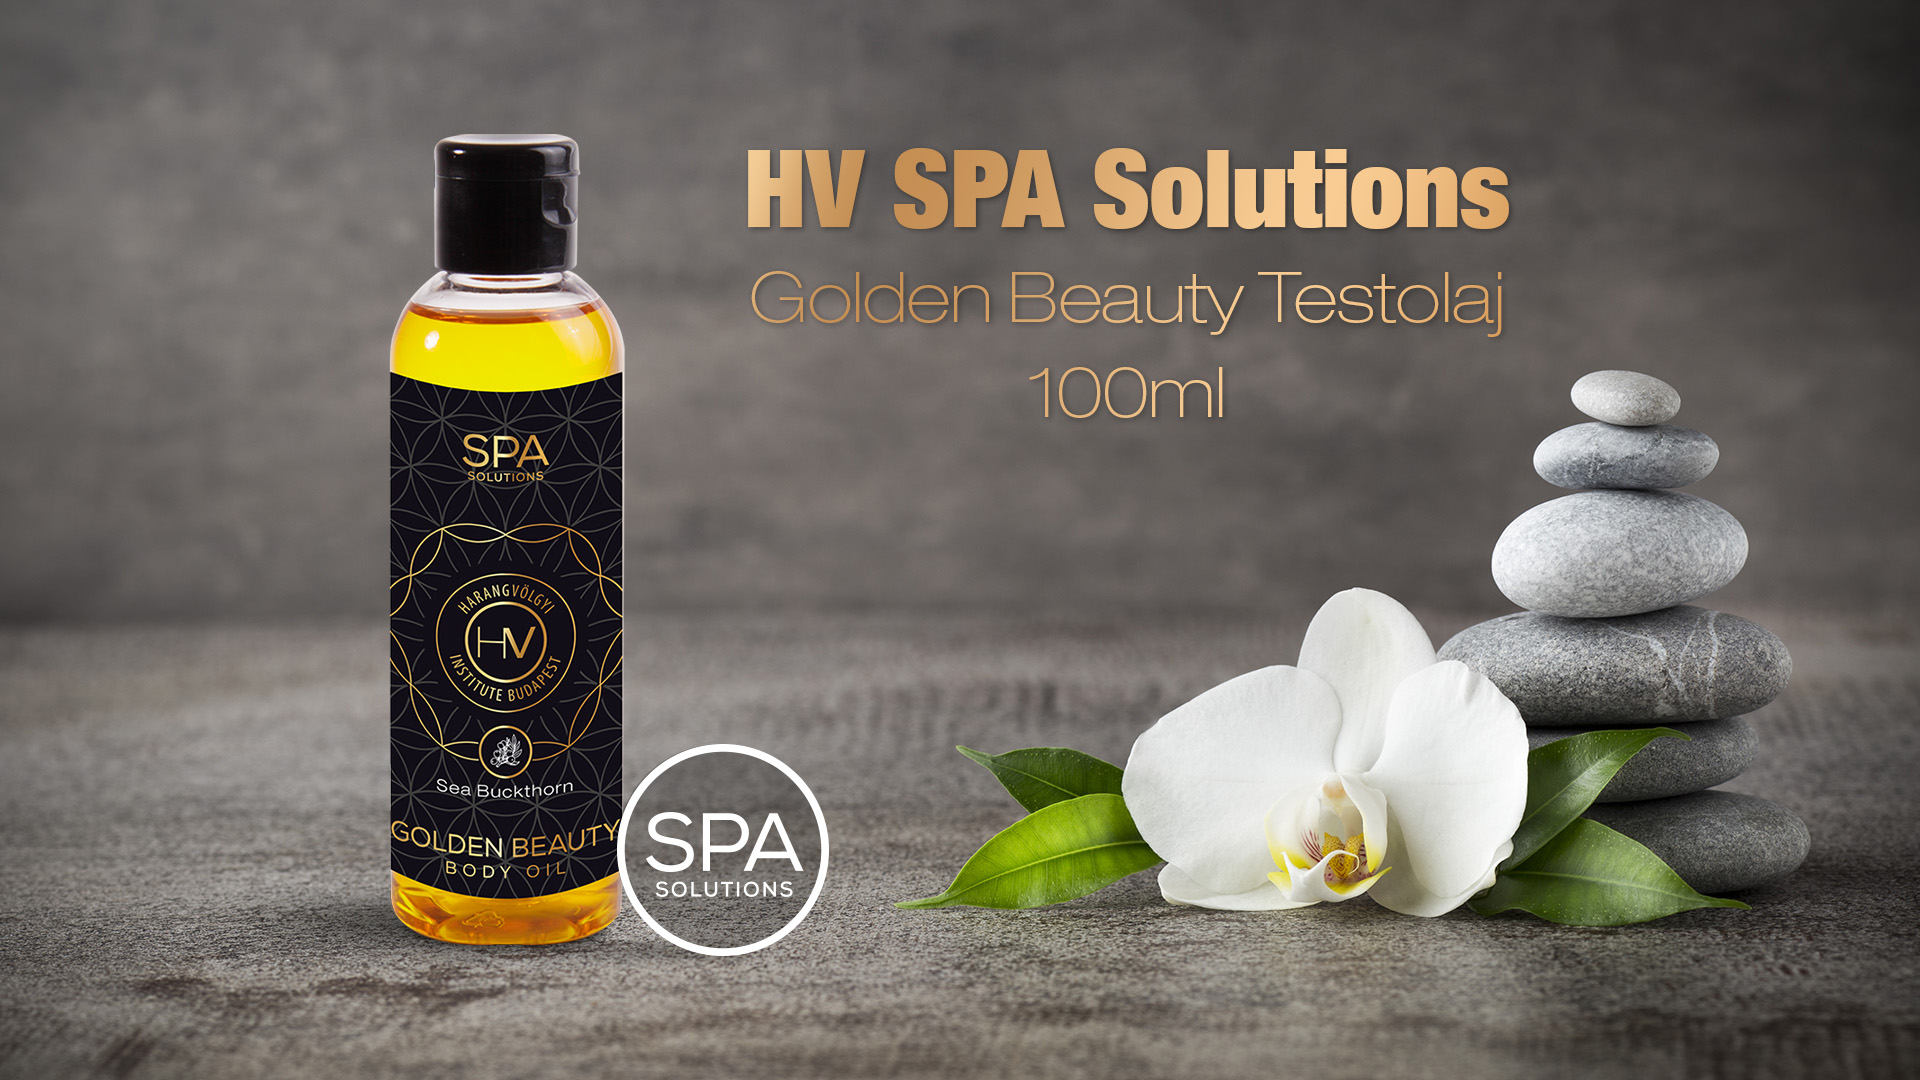 HV SPA Solutions Golden Beauty Testolaj